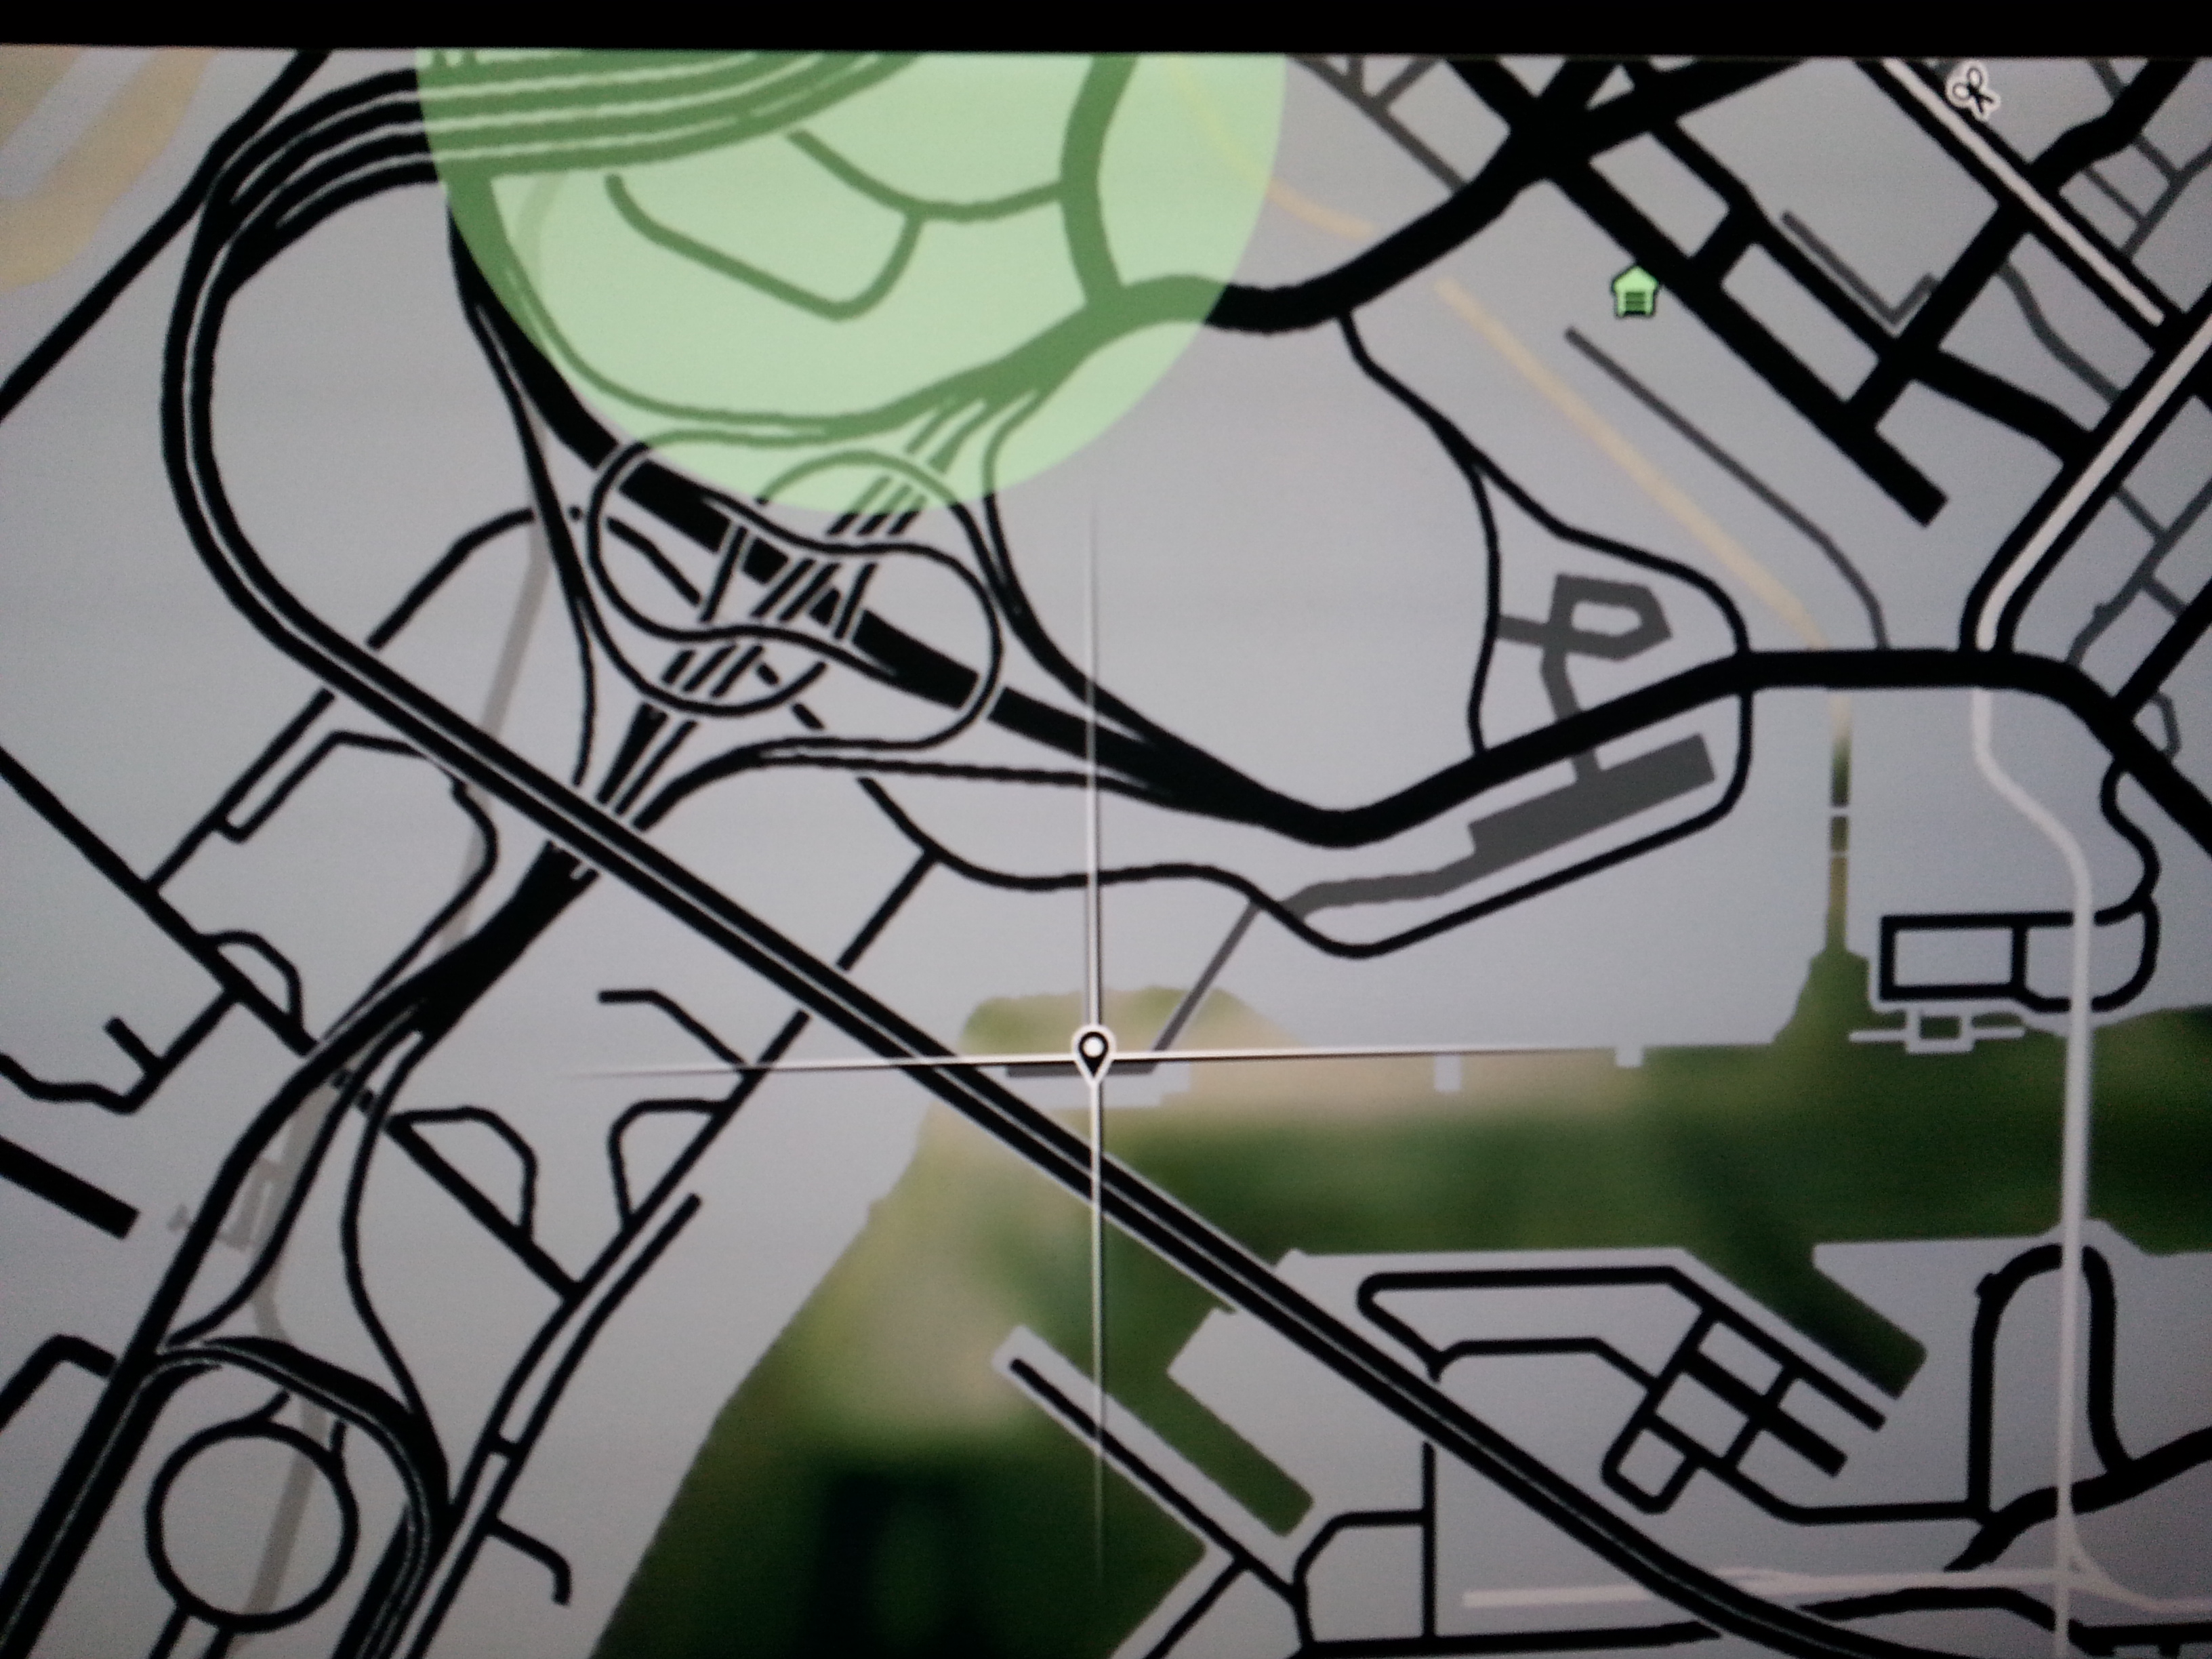 The Dock Handler location in GTA V Emperor Habanero Online Location